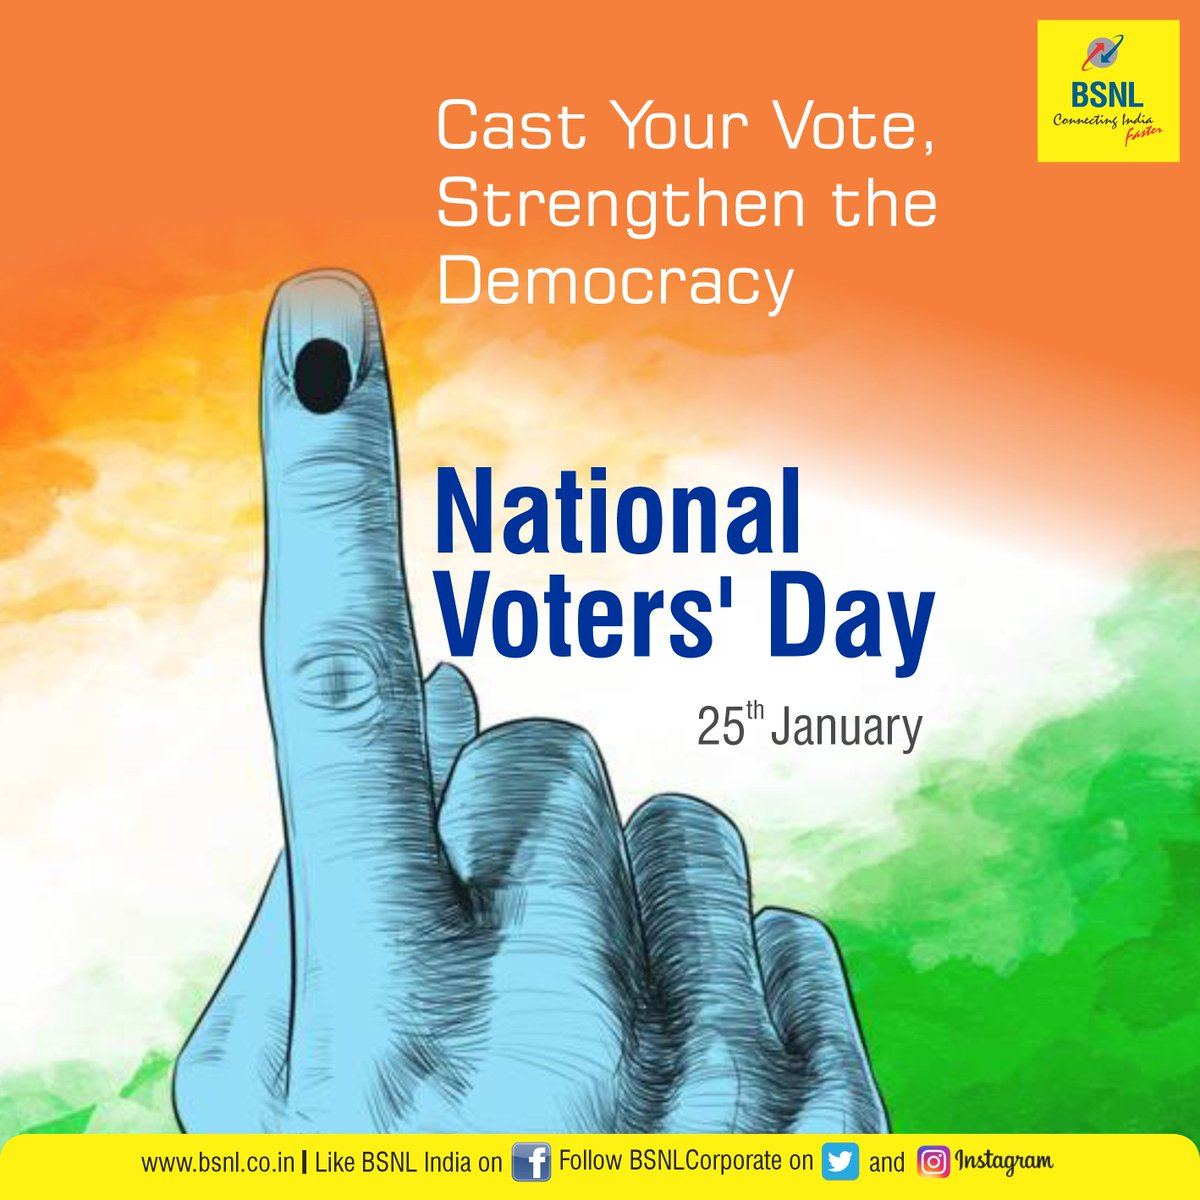 Vote for Your Nation, Vote for Your Future.  @ECISVEEP #NationalVotersDay #NationalVotersDay2021 #Unite2FightCorona